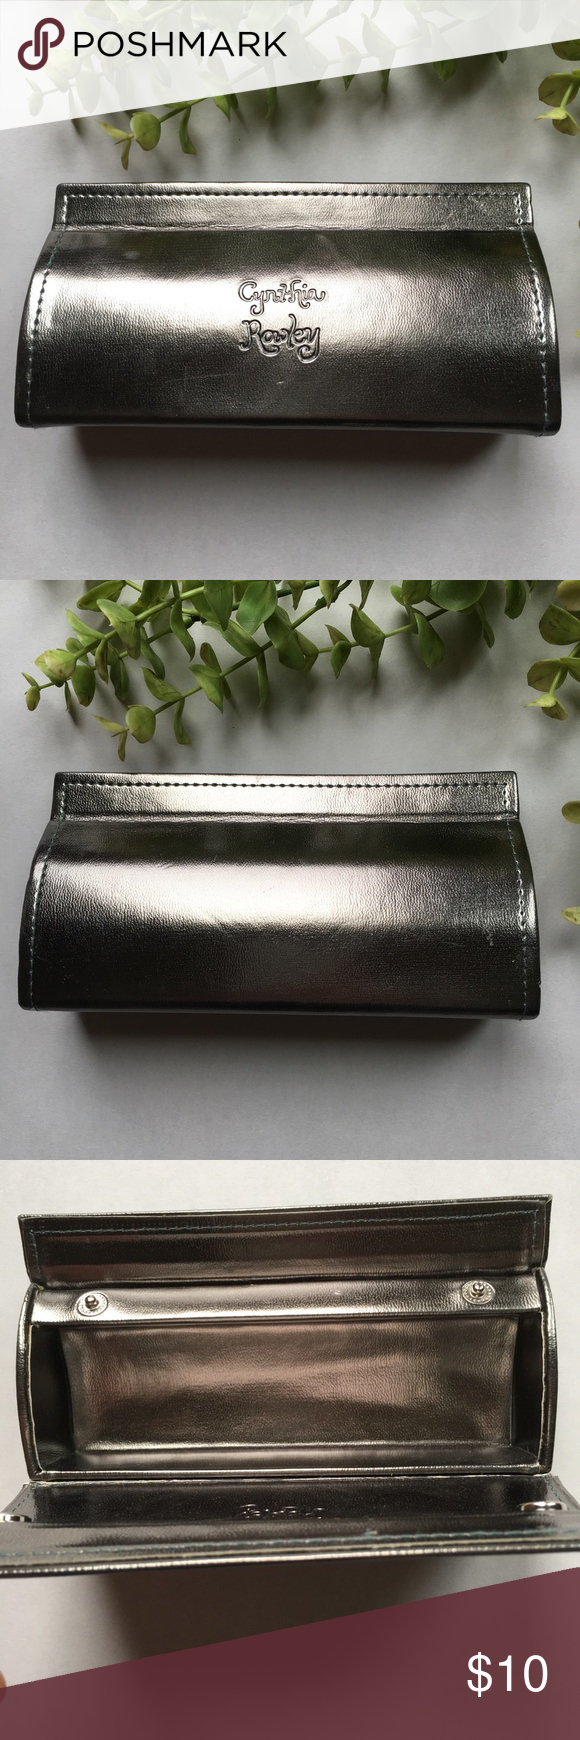 Cynthia Rowley Pewter Sunglass Case Silver / Pewter color. Markings on front. Wear at crease (shown). Length 6.25 inches. Height 3.25 inches. Please refer to pictures prior to purchase. Cynthia Rowley Accessories Glasses